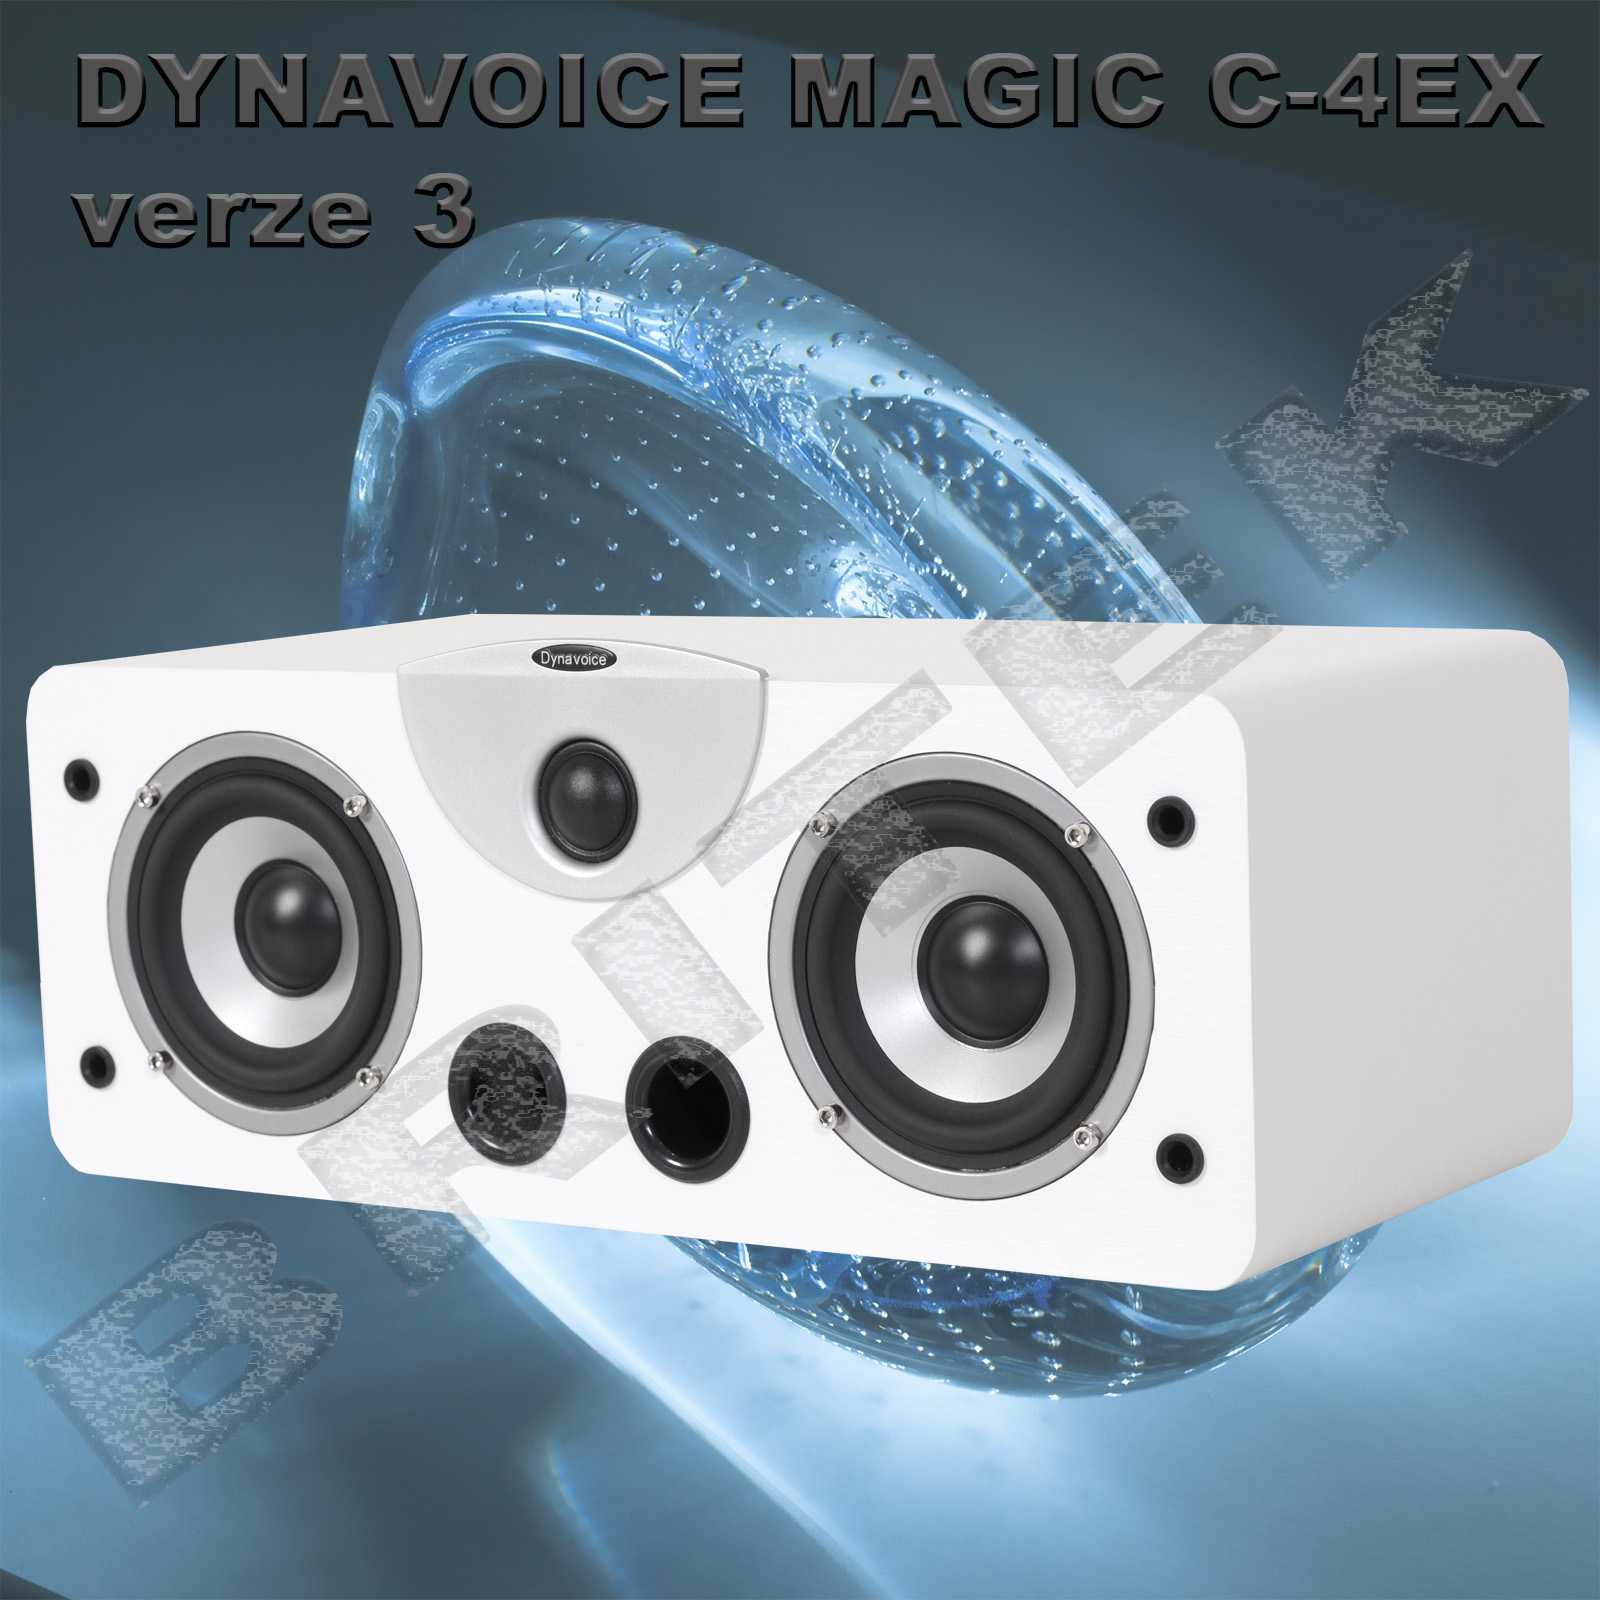 DYNAVOICE MAGIC C4 EX ver.3